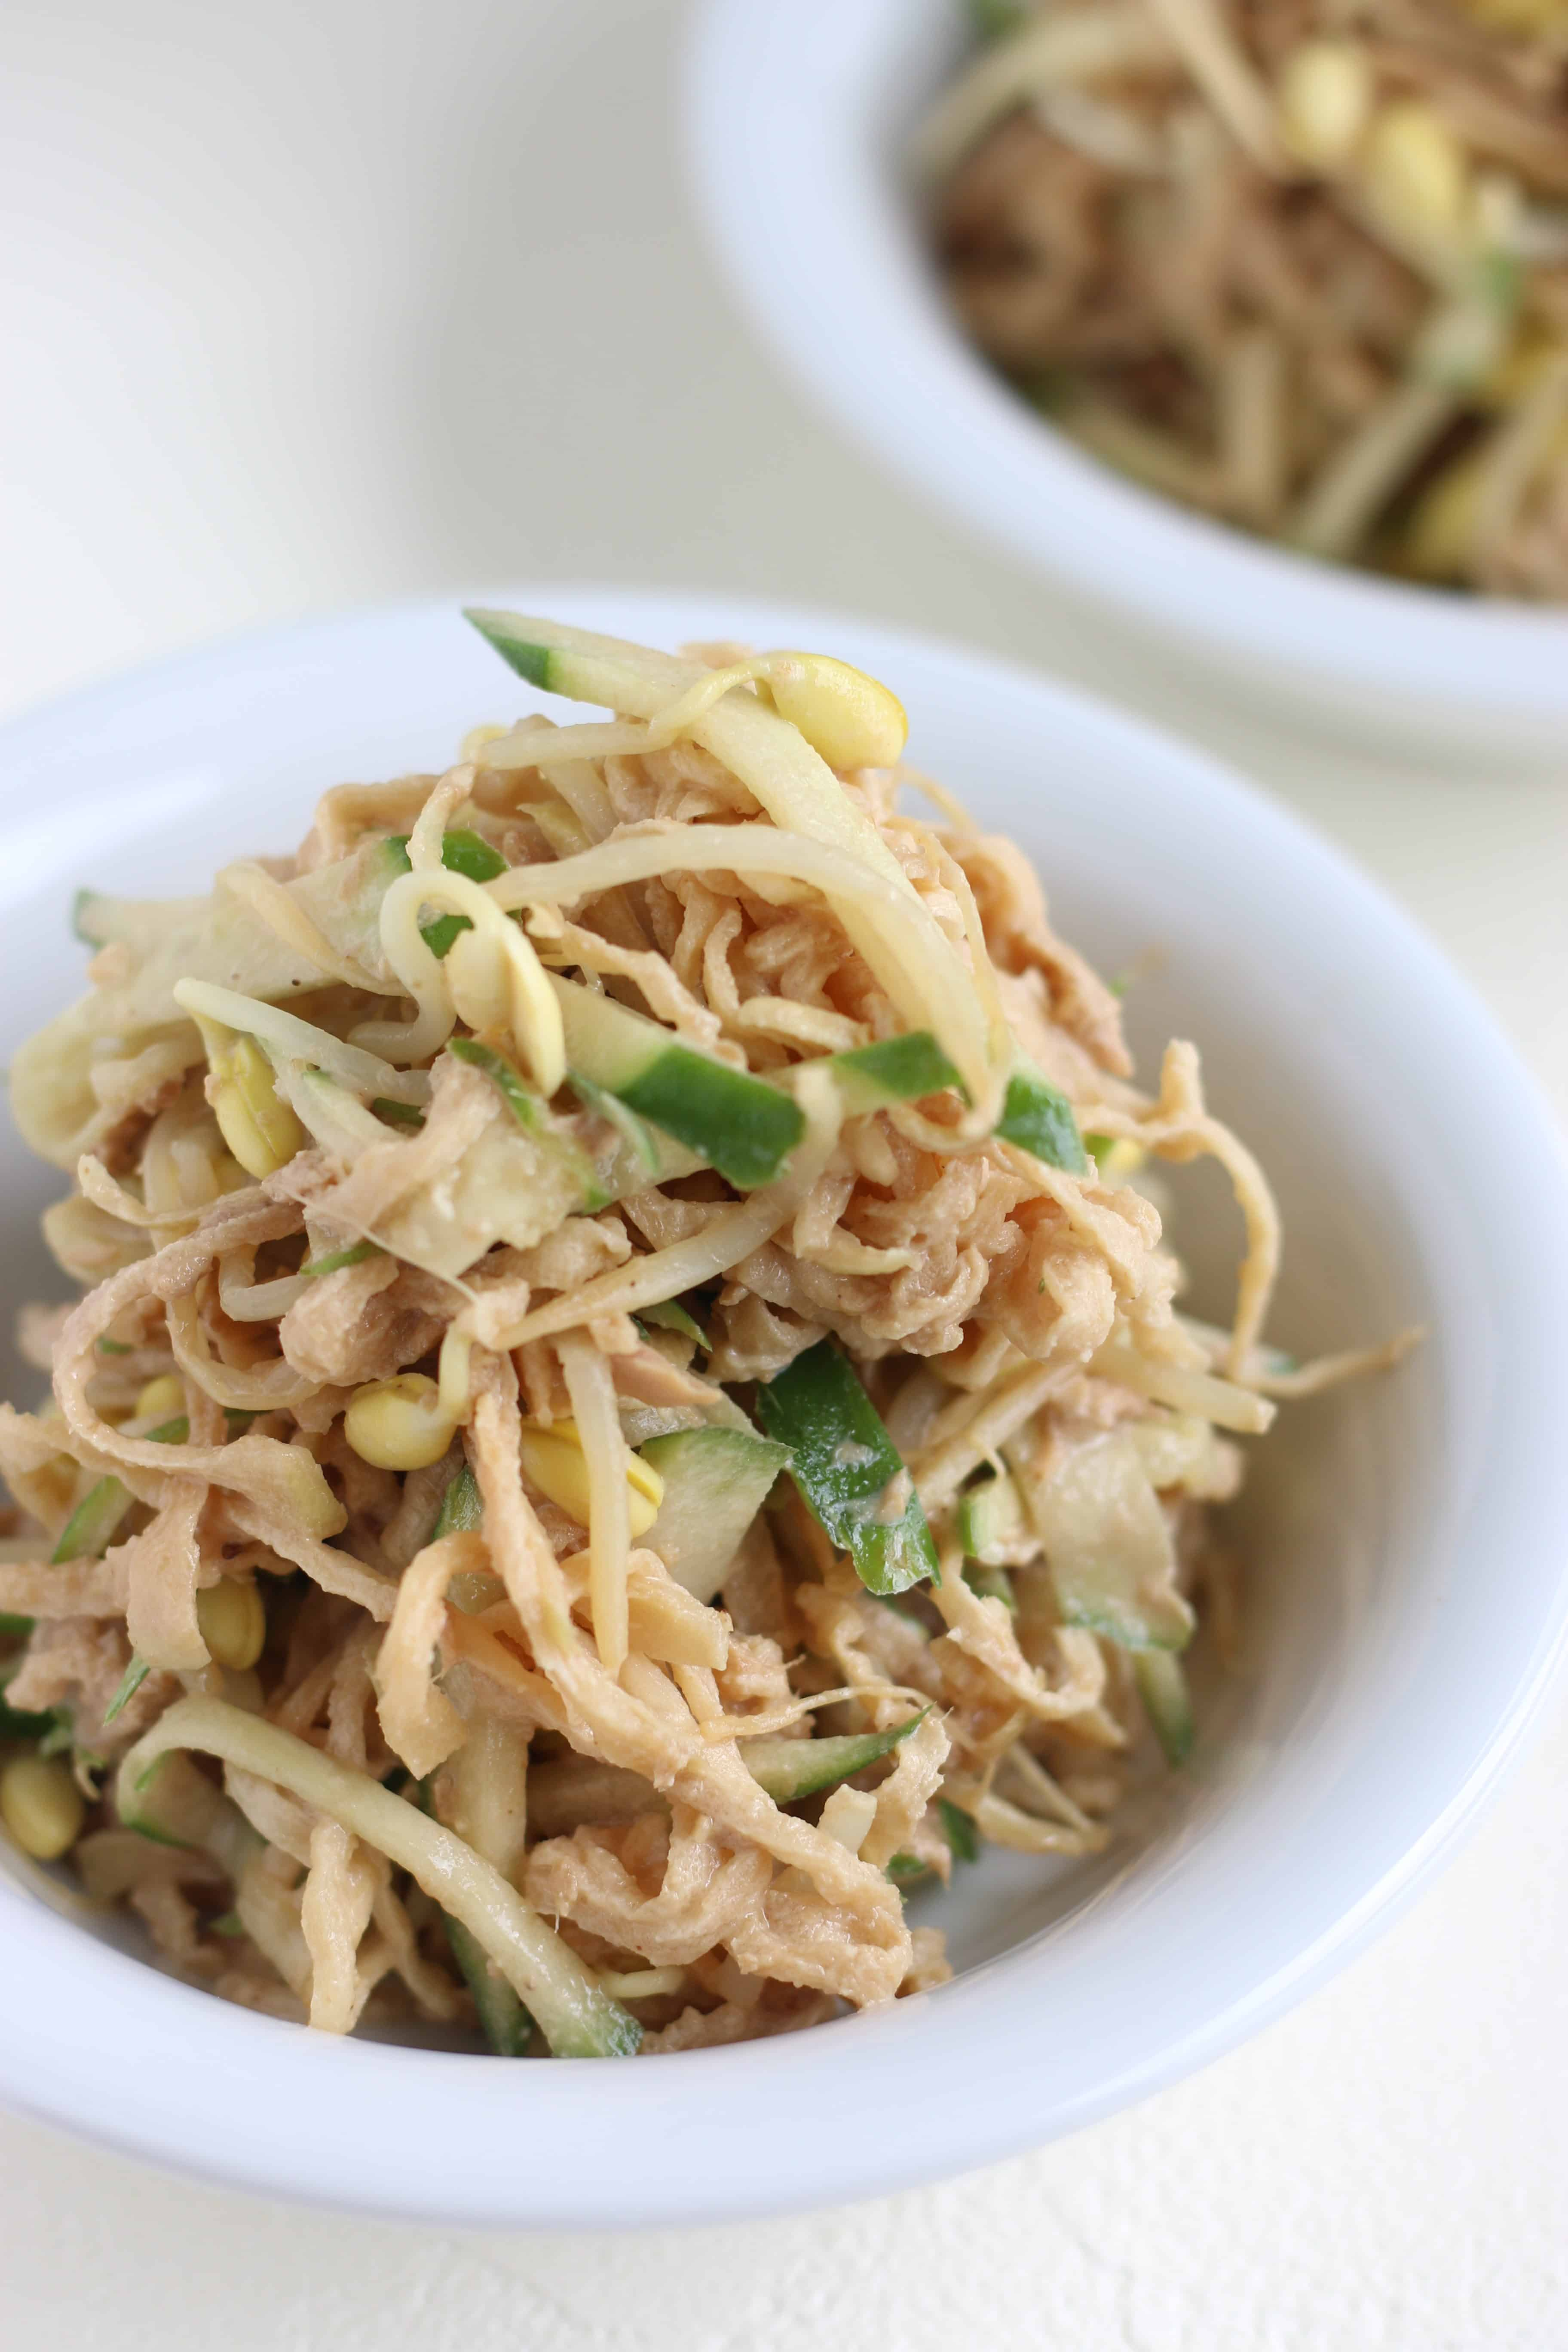 Kiriboshi Daikon(Dried radish) salad | Chef JA Cooks My Simple Gohan  If you wanna try something new, Kiriboshi Daikon Salad is nutritious and healthy, and easy to make . Here are some simple salad recipes that you can enjoy. | Food blog run by mama of two. Introducing simple Japanese home cooking recipes that are useful every day, easy-to-make snacks, and healthy yummy dishes. chefjacooks.com